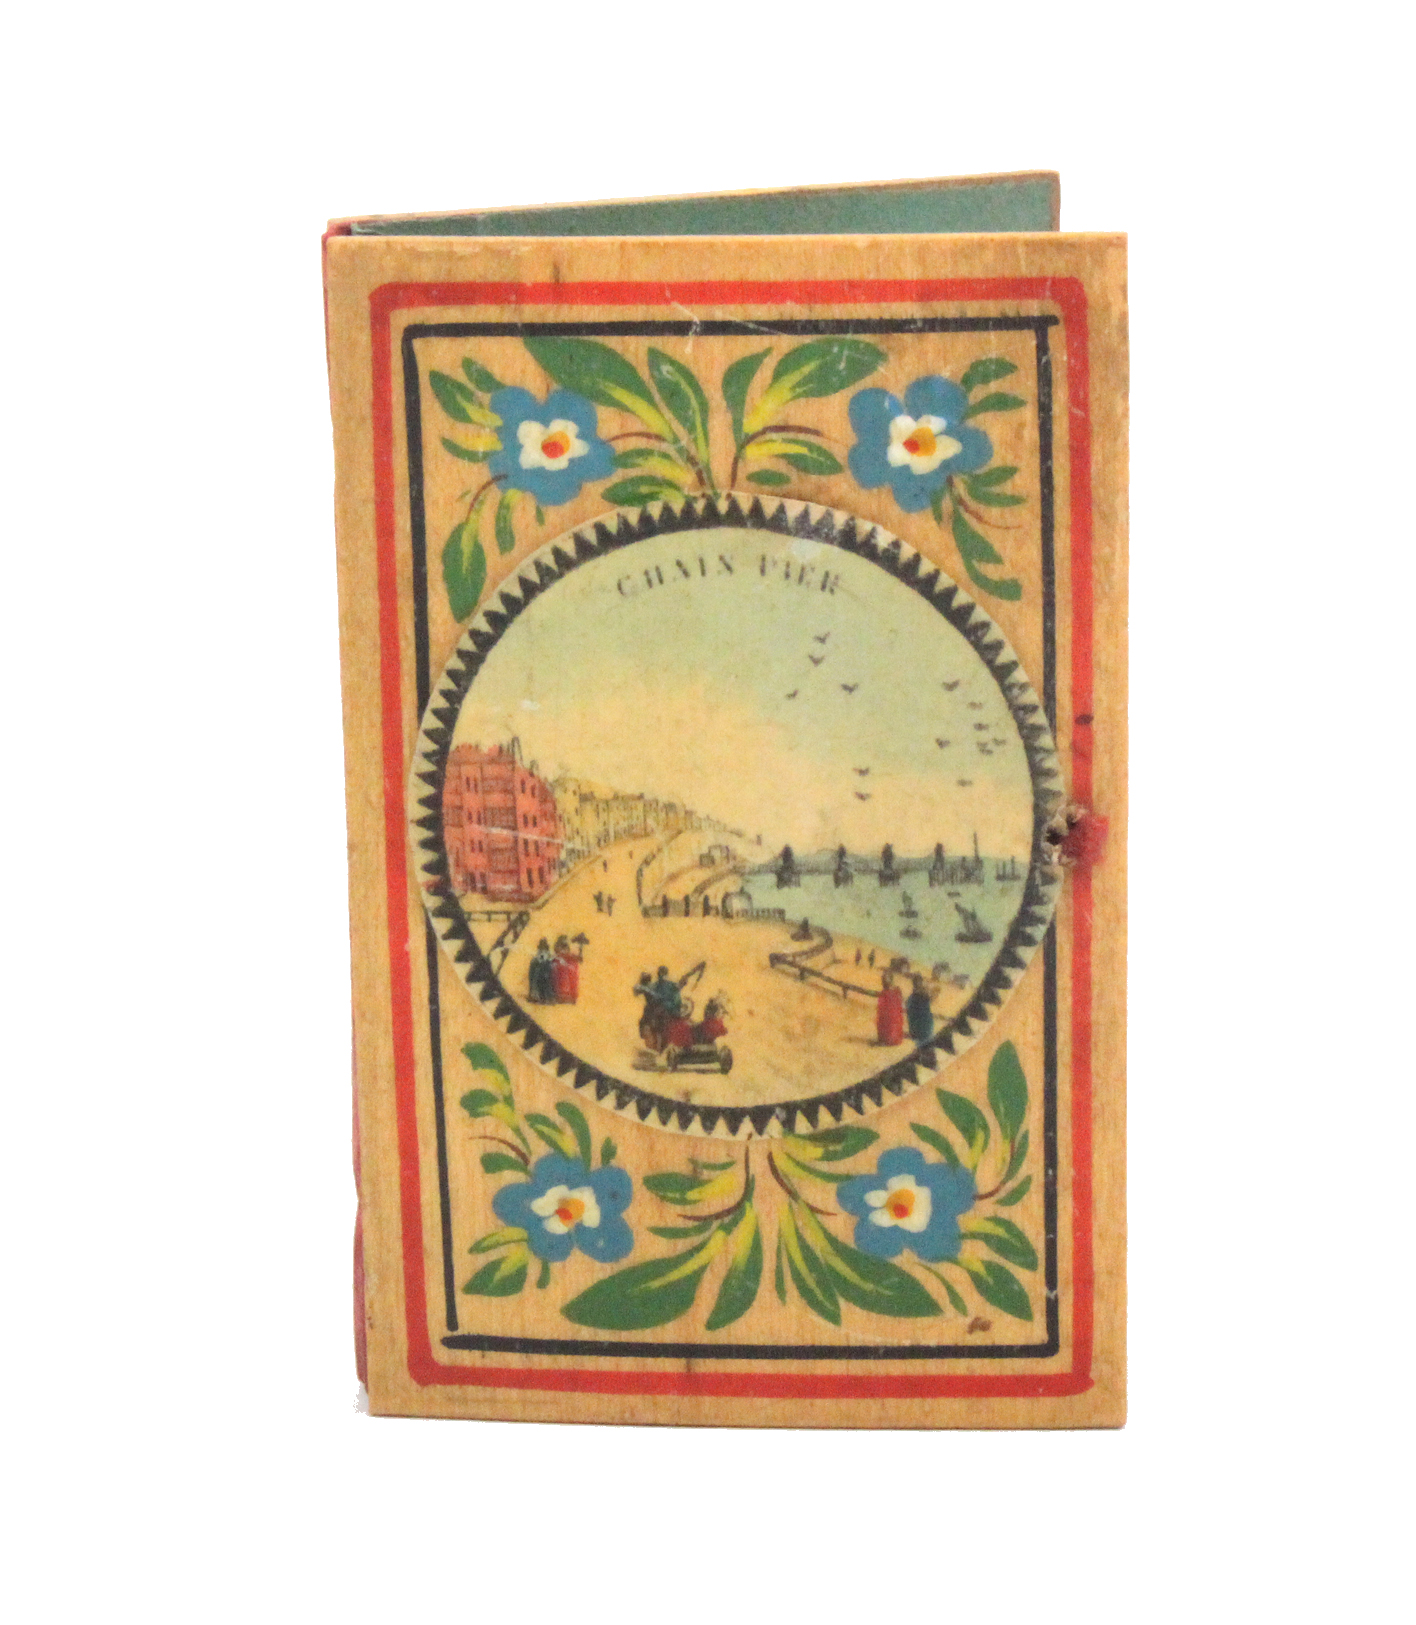 Lot 23 - A good early painted Tunbridge ware whitewood needle book, the cover with a titled circular colour